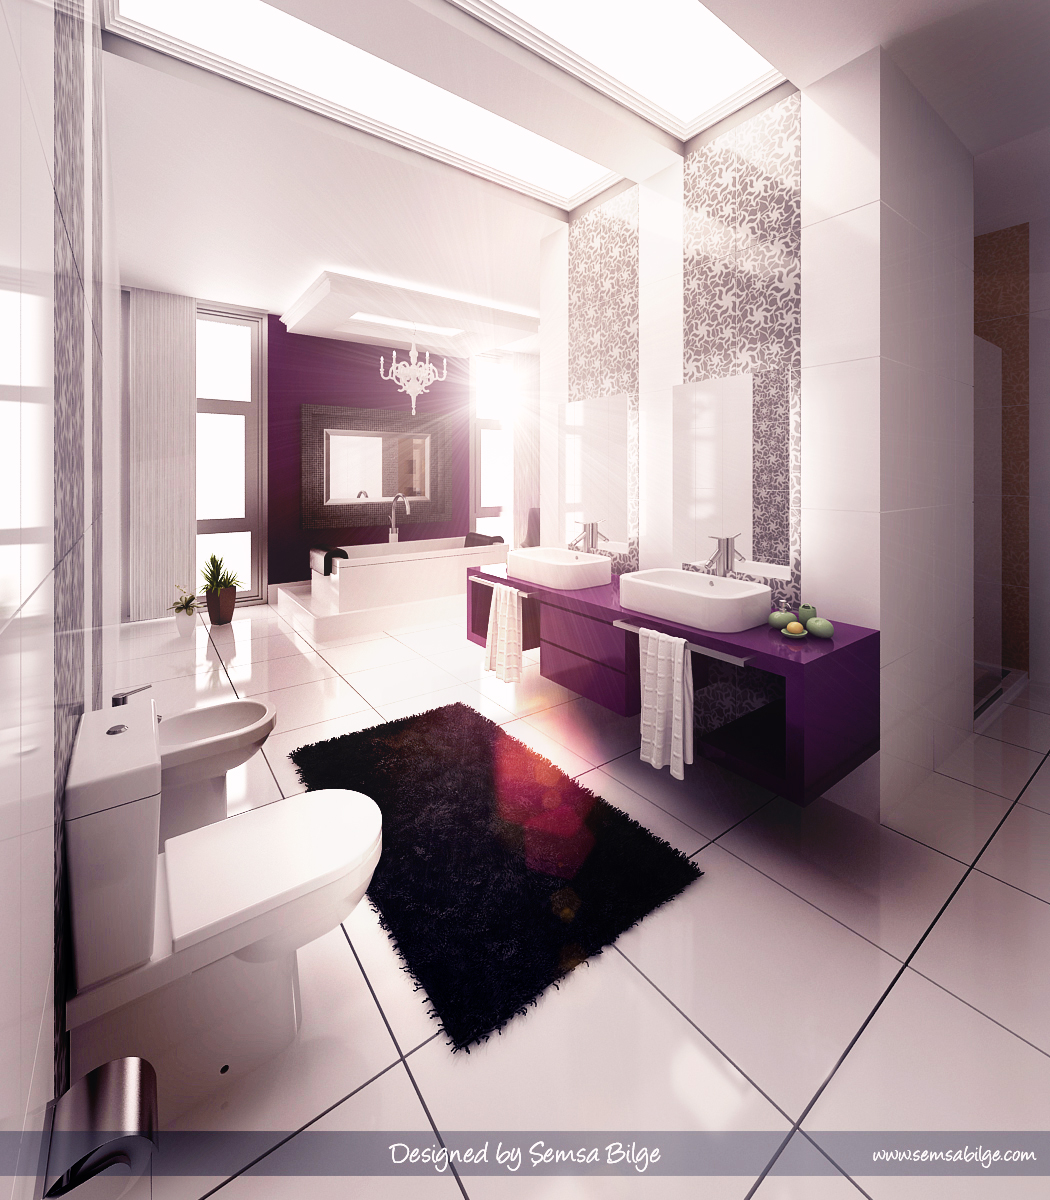 Beautiful bathroom designs ideas interior design for Bathroom decor ideas